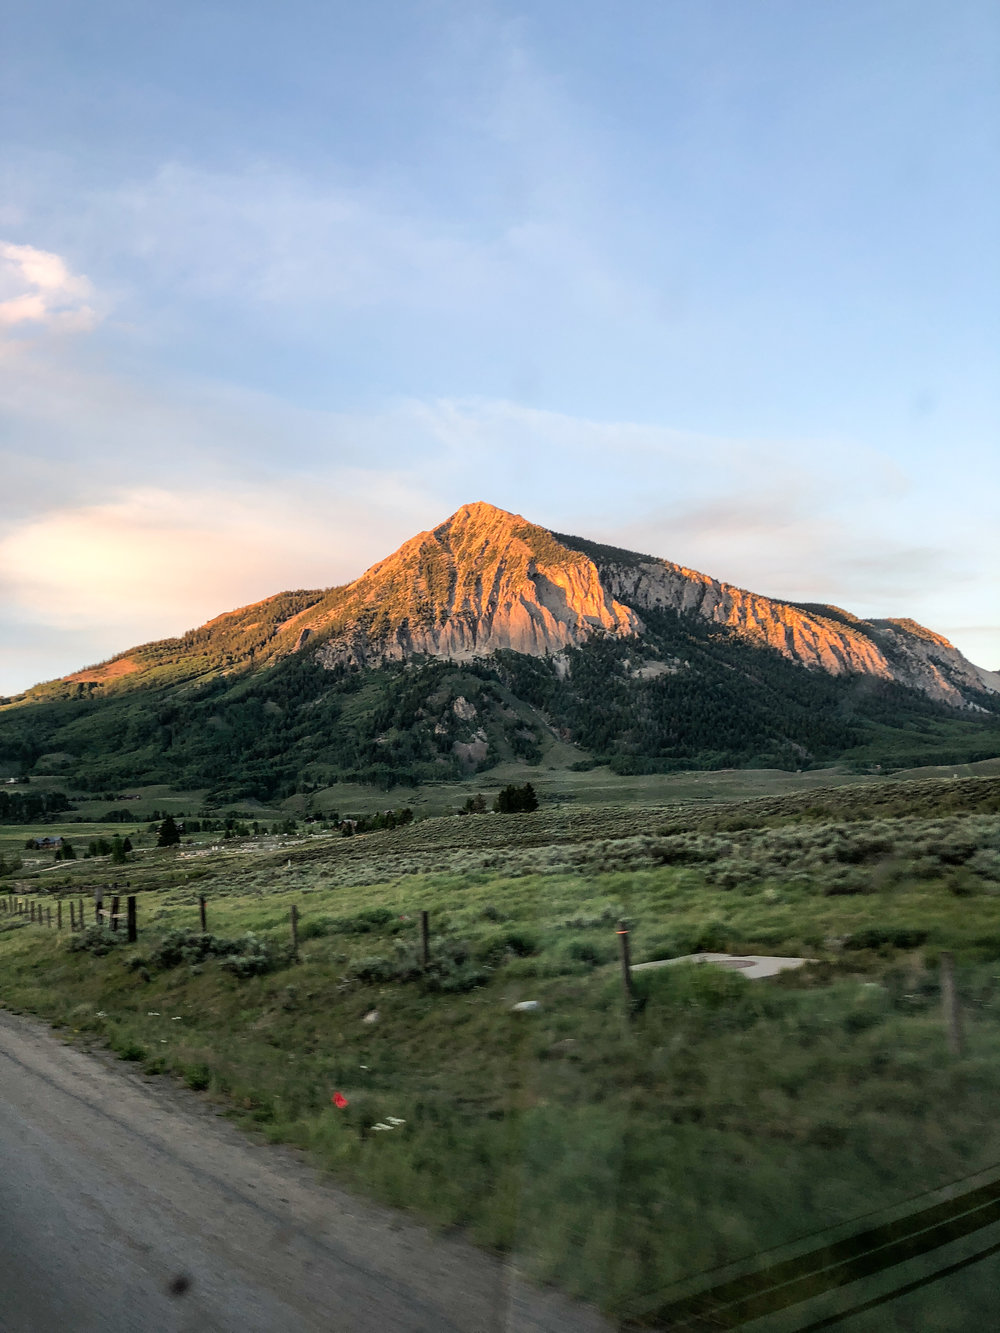 7:15PM - Crested Butte! I am here to work the Big Mountain Enduro race. Helping out with registration and check-in while meeting the pros and of course checking out the best that Yeti Cycles has to offer.